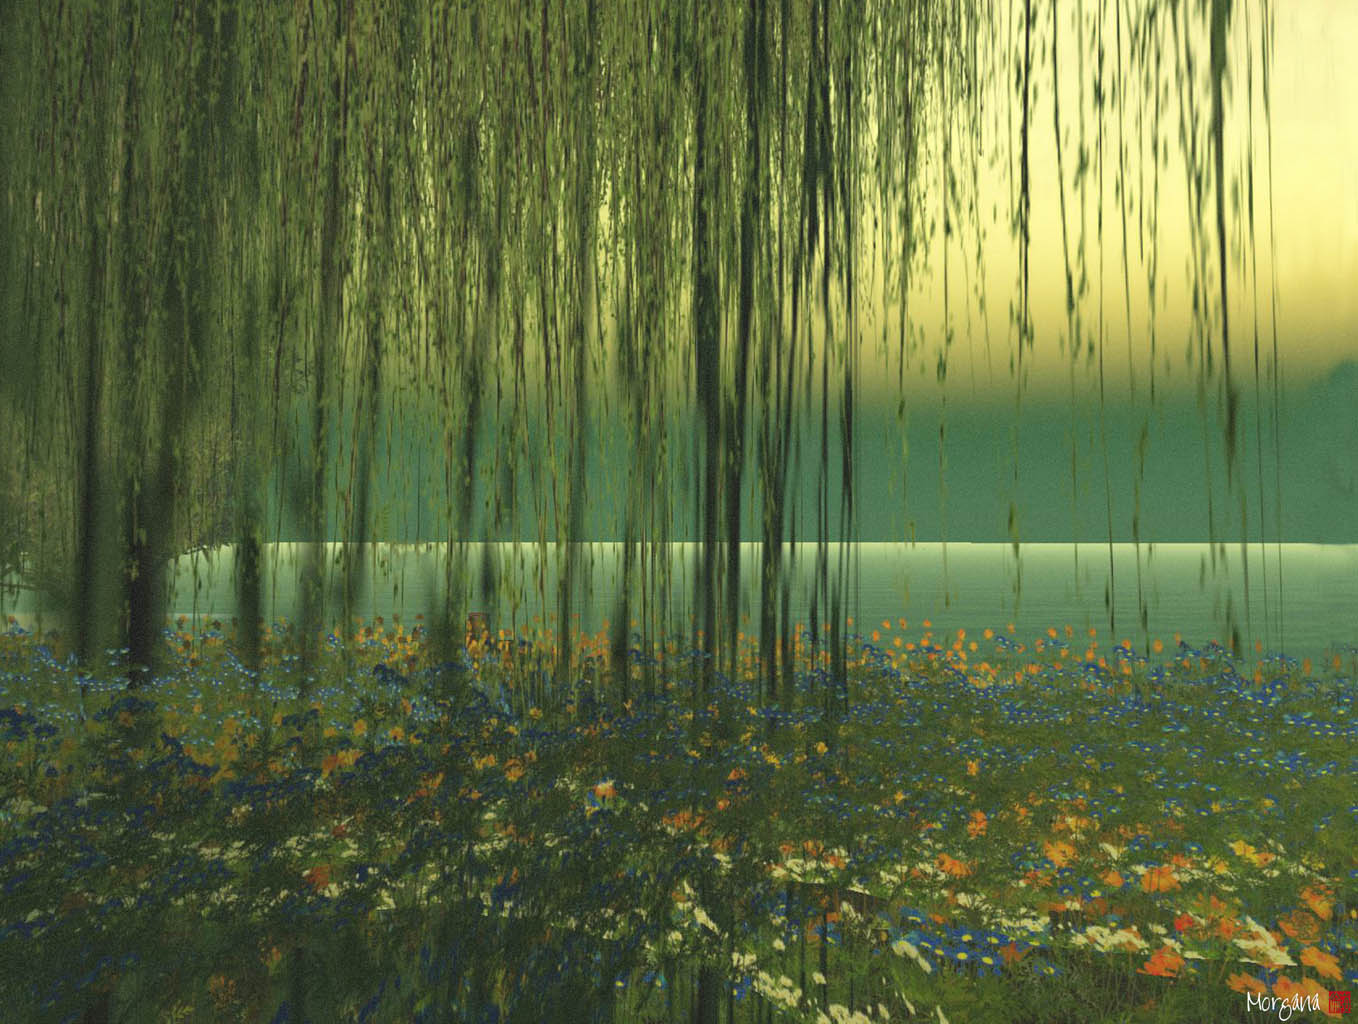 The Willow Weeps by Morgana Nagorski